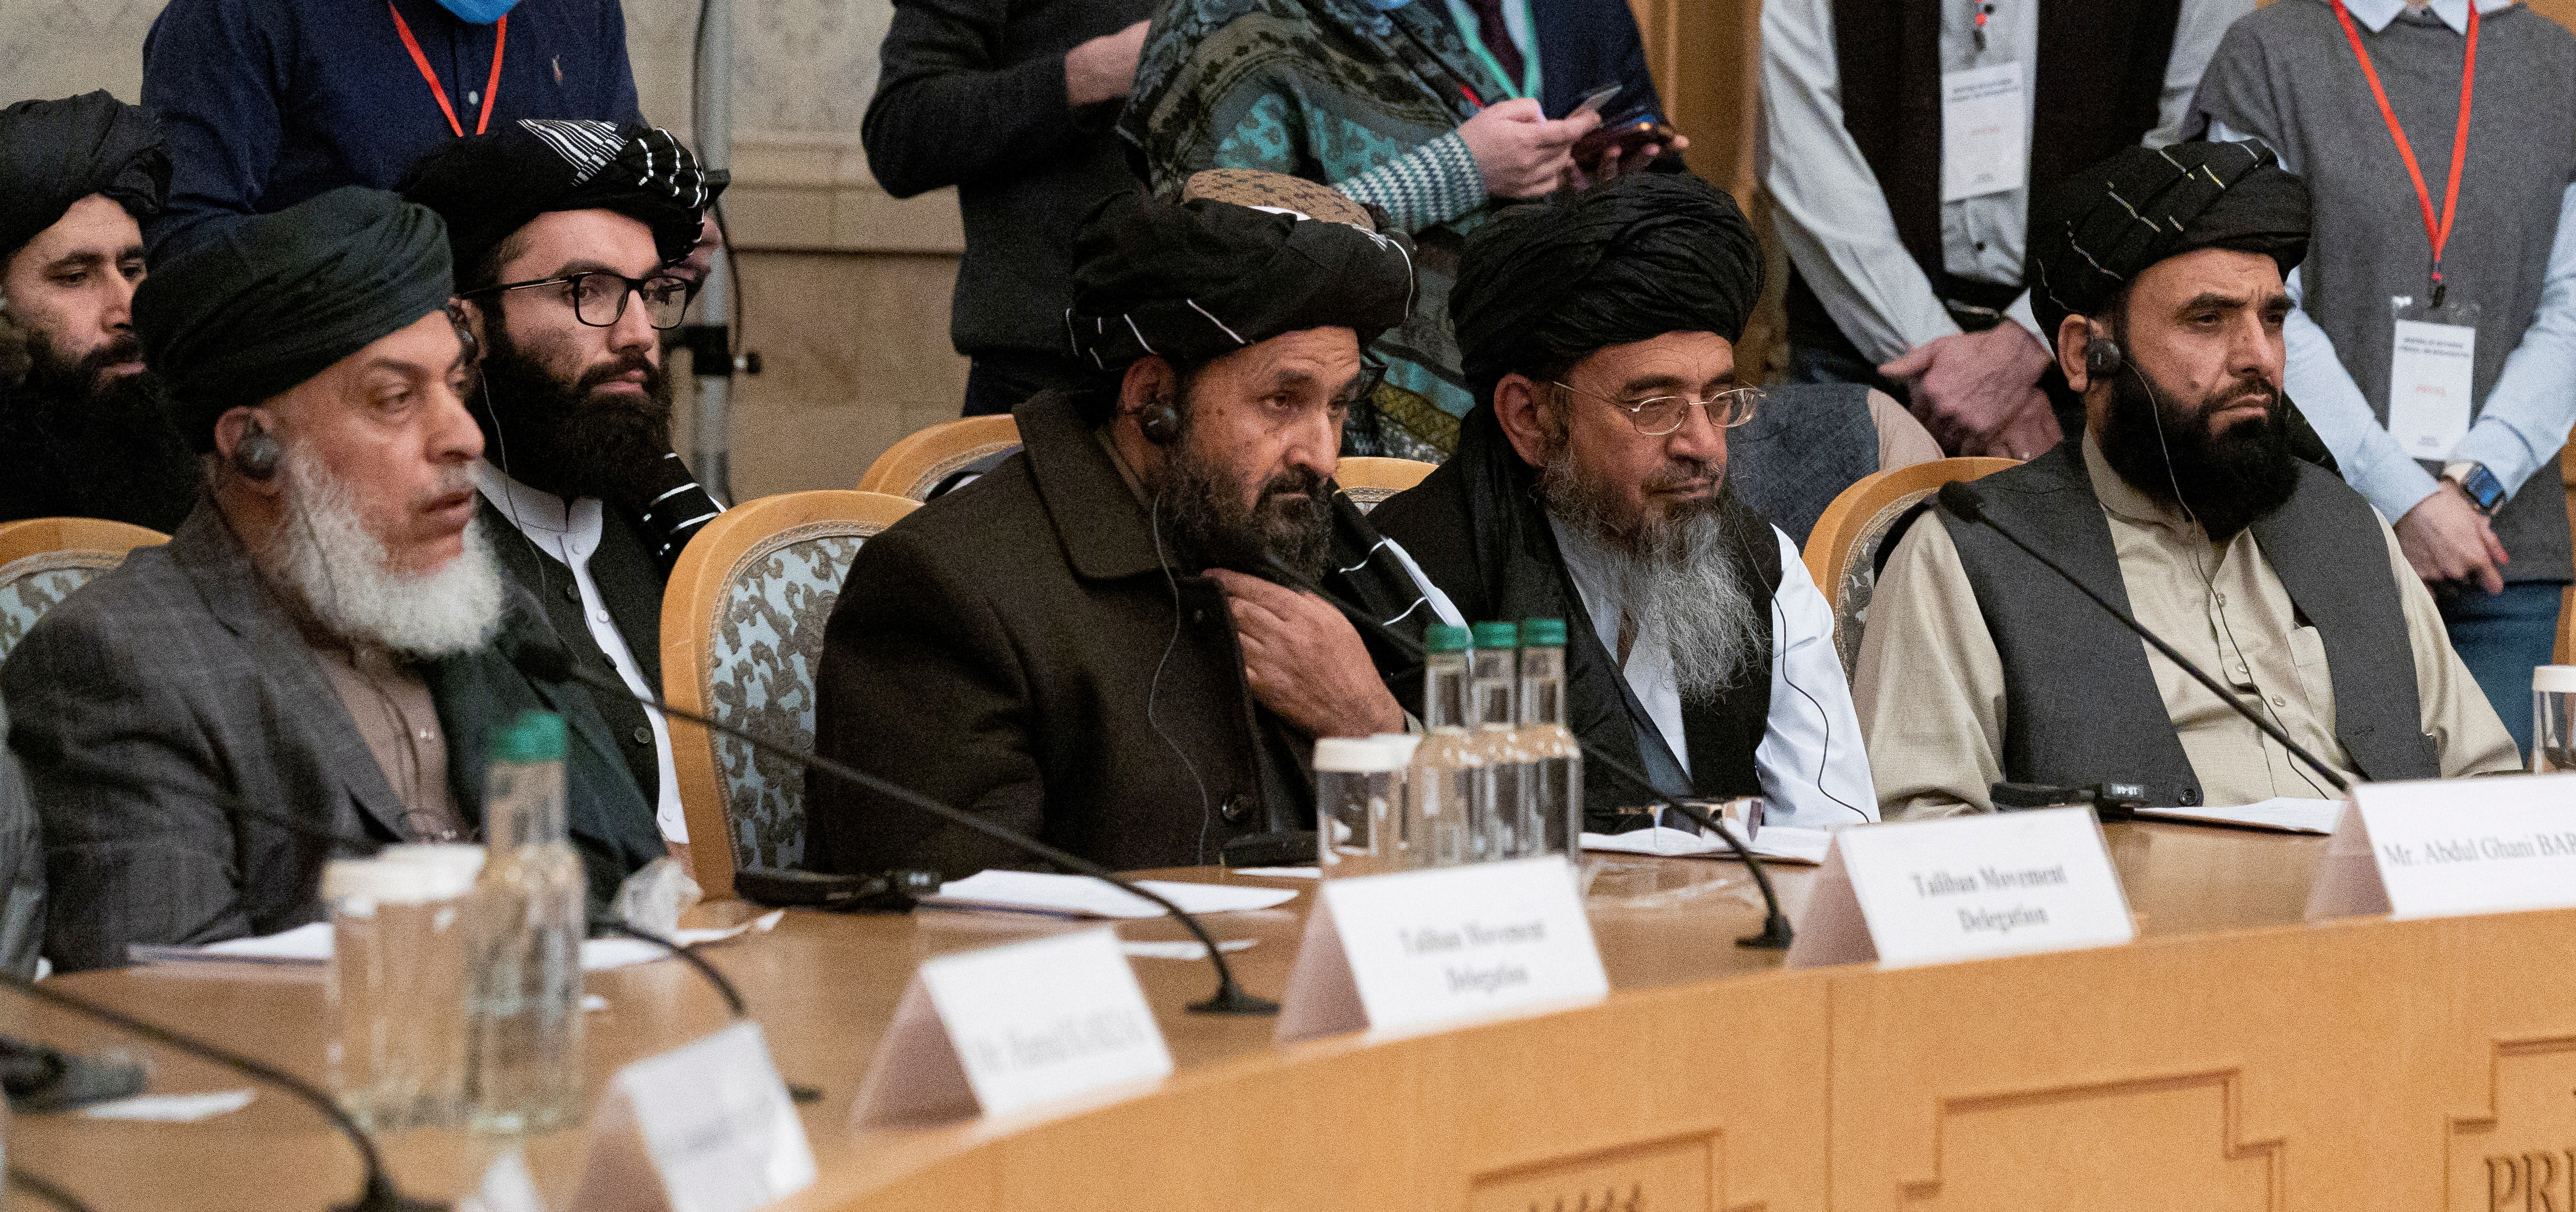 Mullah Abdul Ghani Baradar, the Taliban's deputy leader and negotiator, and other delegation members attend the Afghan peace conference in Moscow, Russia March 18, 2021. Alexander Zemlianichenko/Pool via REUTERS/File Photo